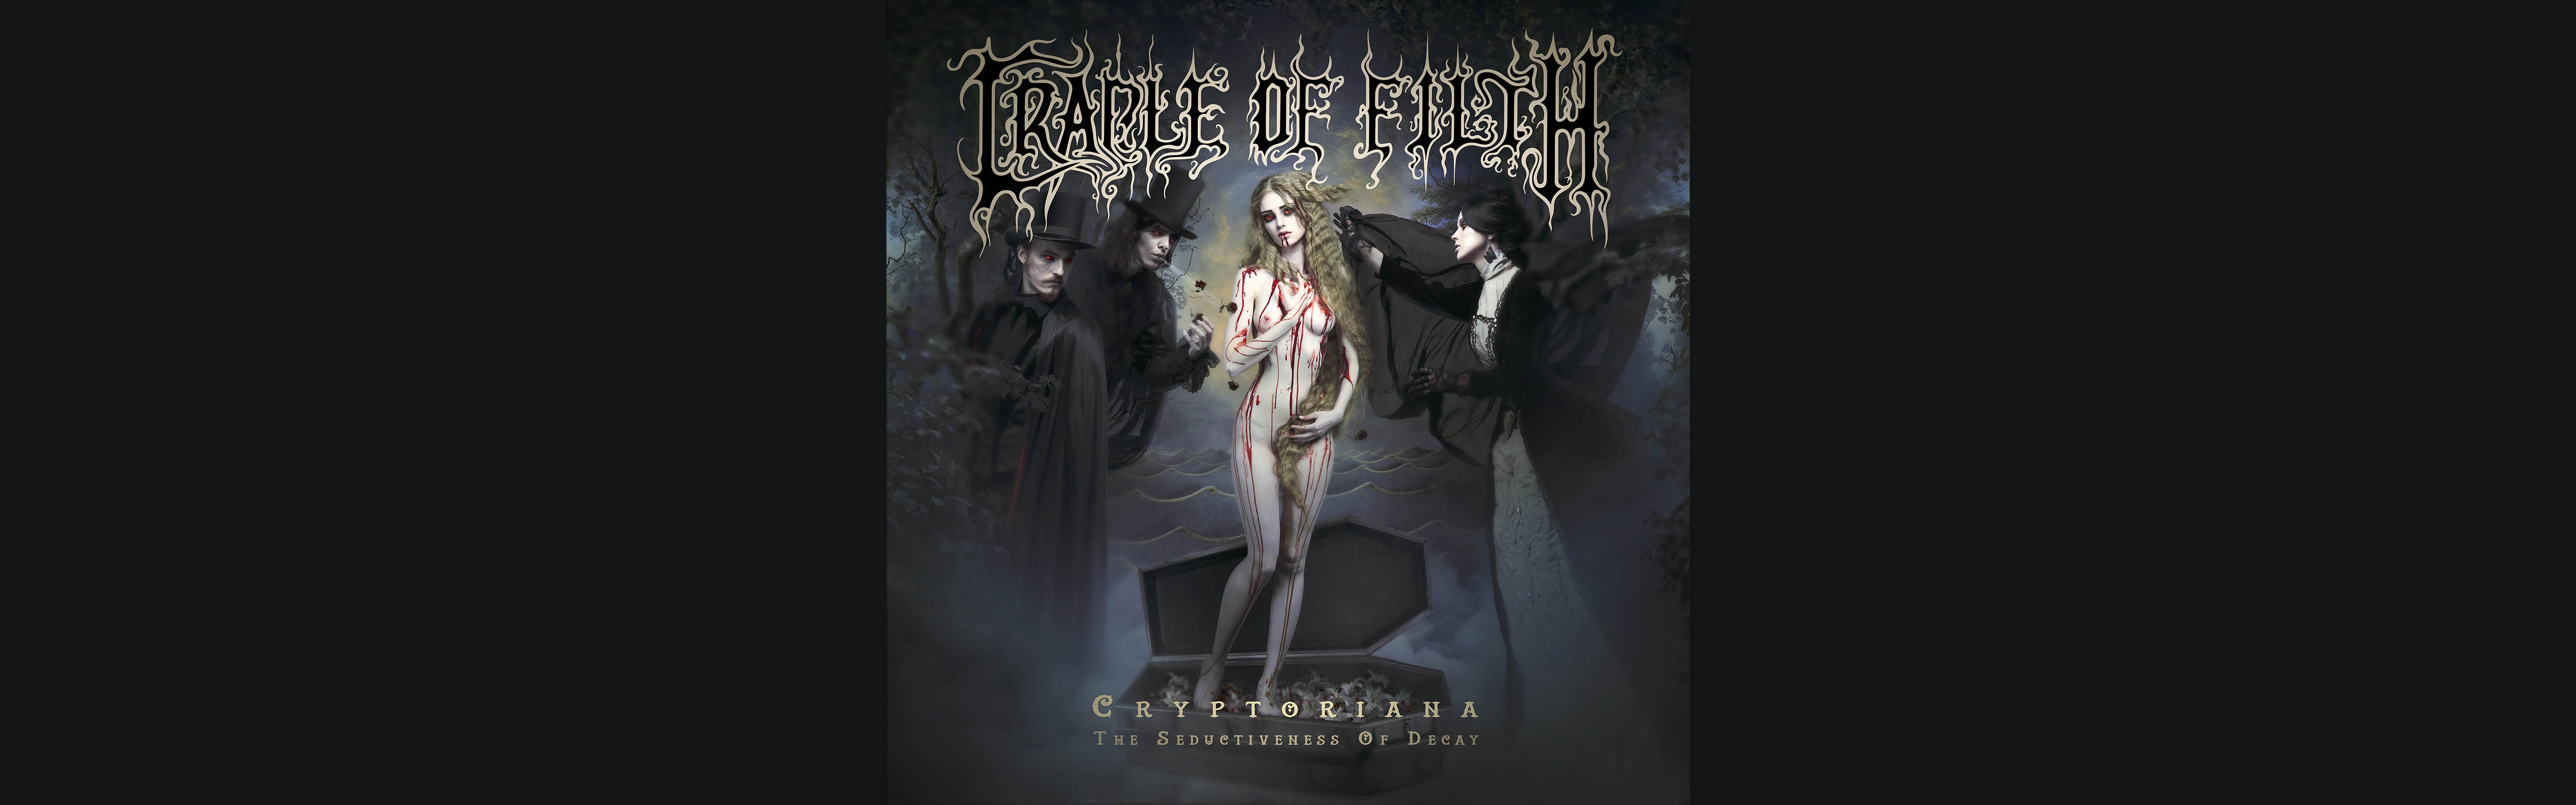 CRADLE OF FILTH + SPECIAL GUEST MOONSPELL